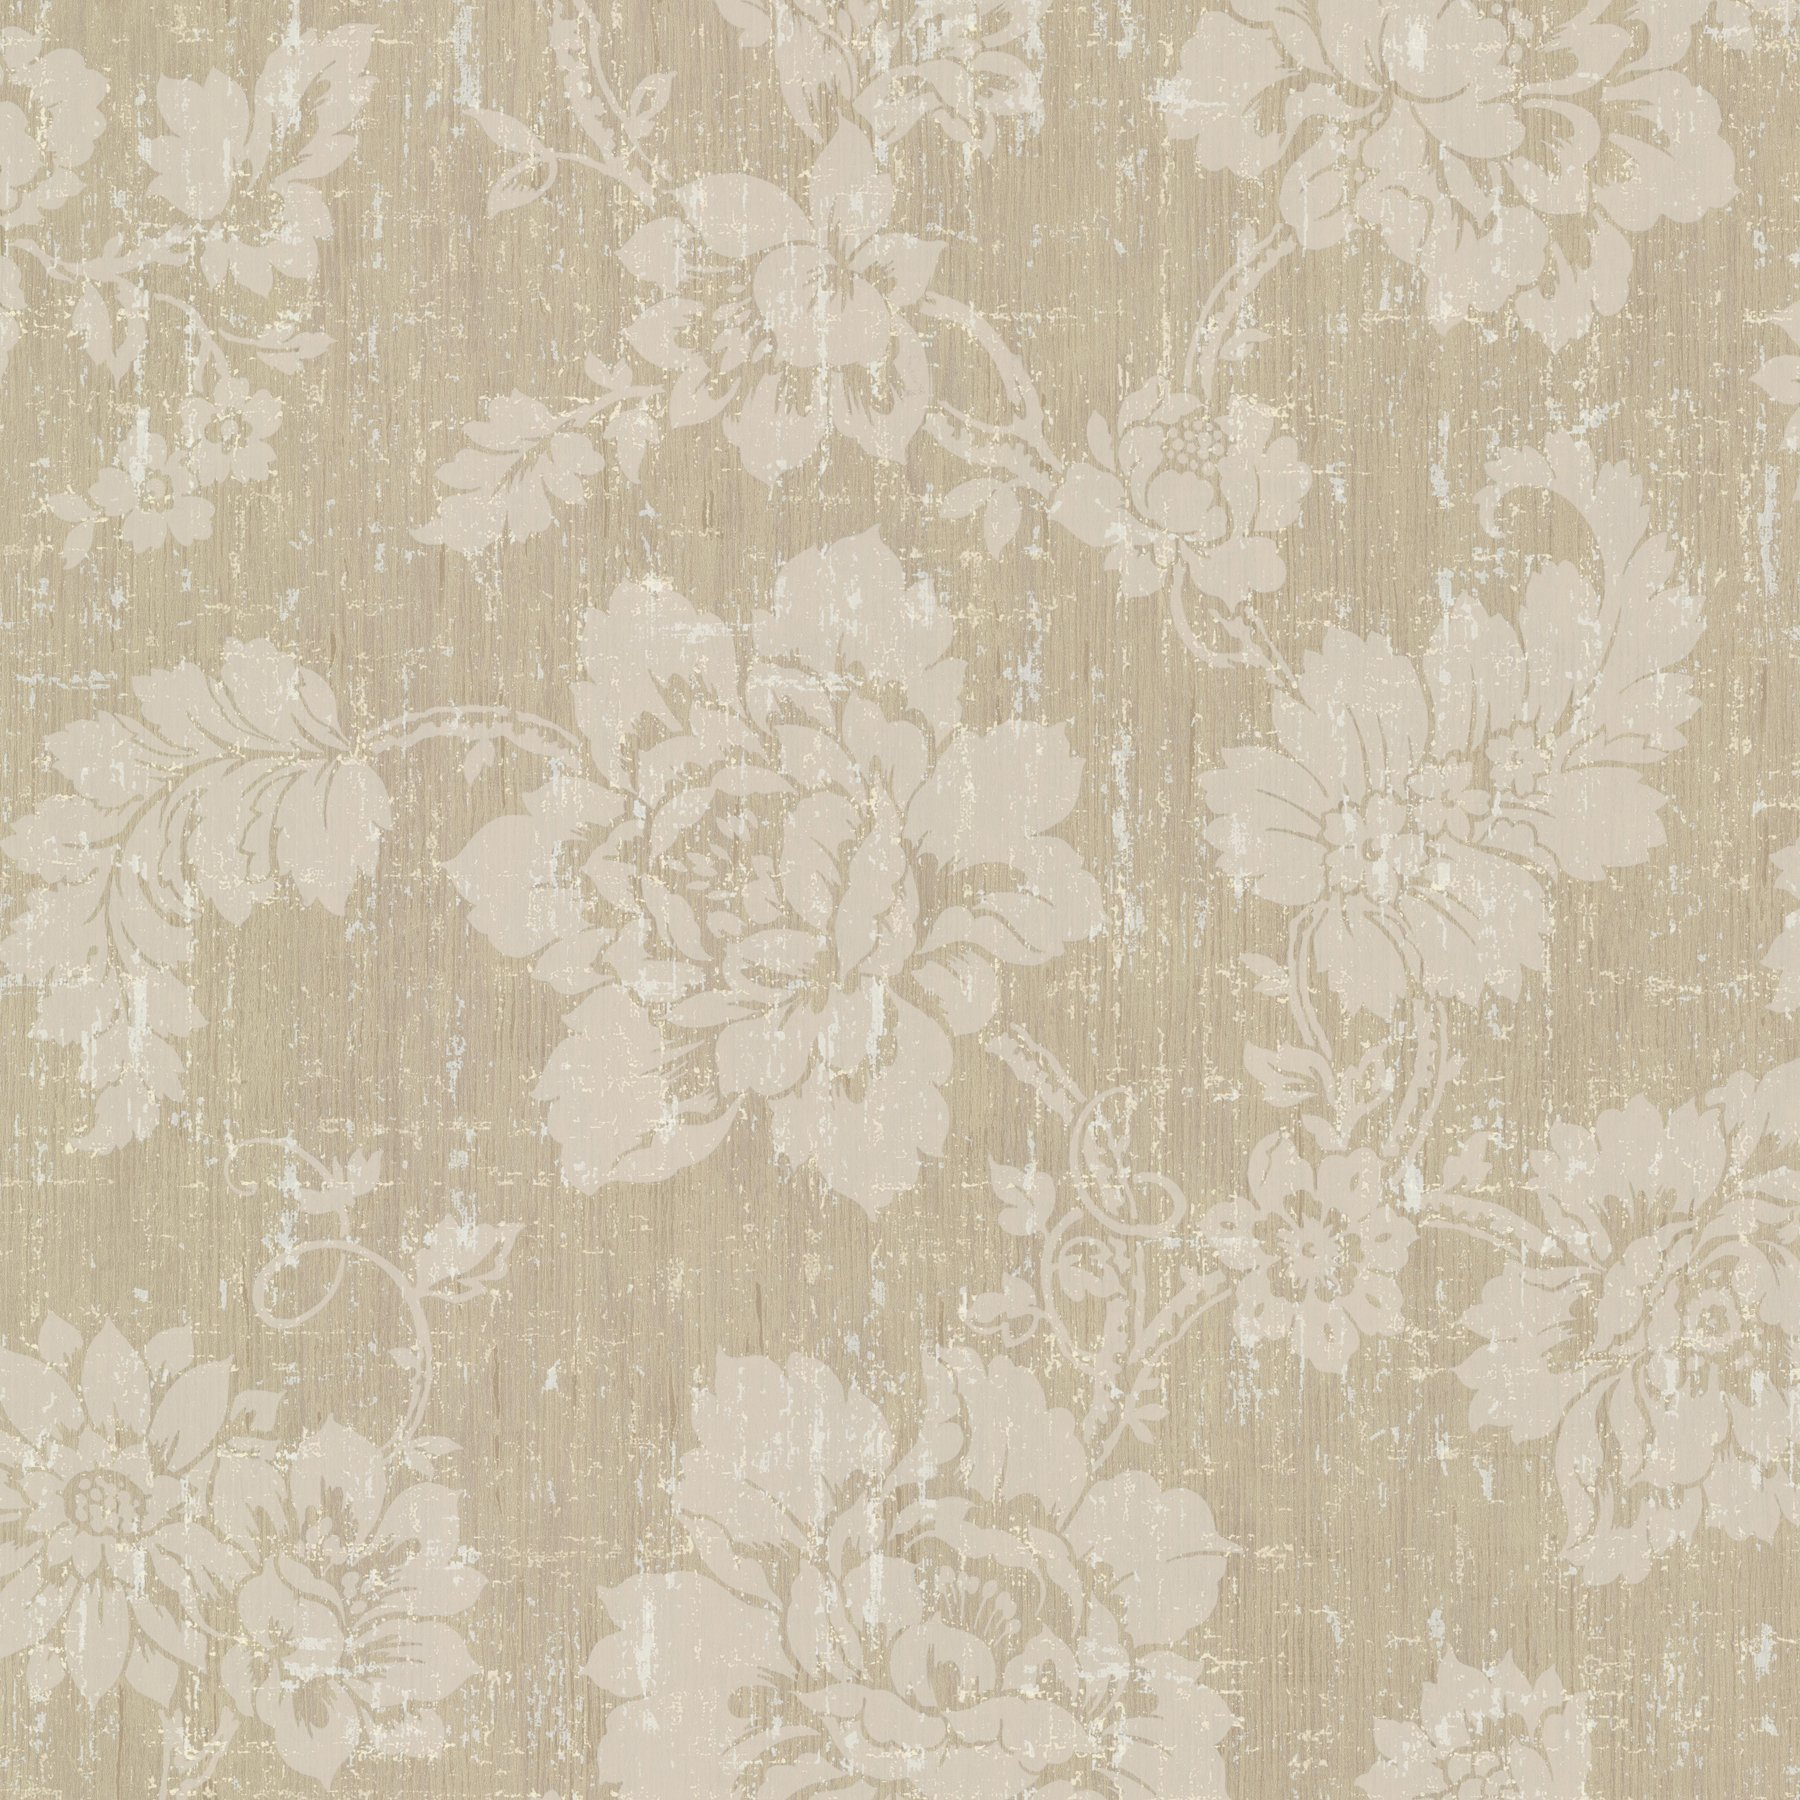 Kenneth James 672-20053 Giardina Floral Trail Wallpaper, Bronze by Kenneth James